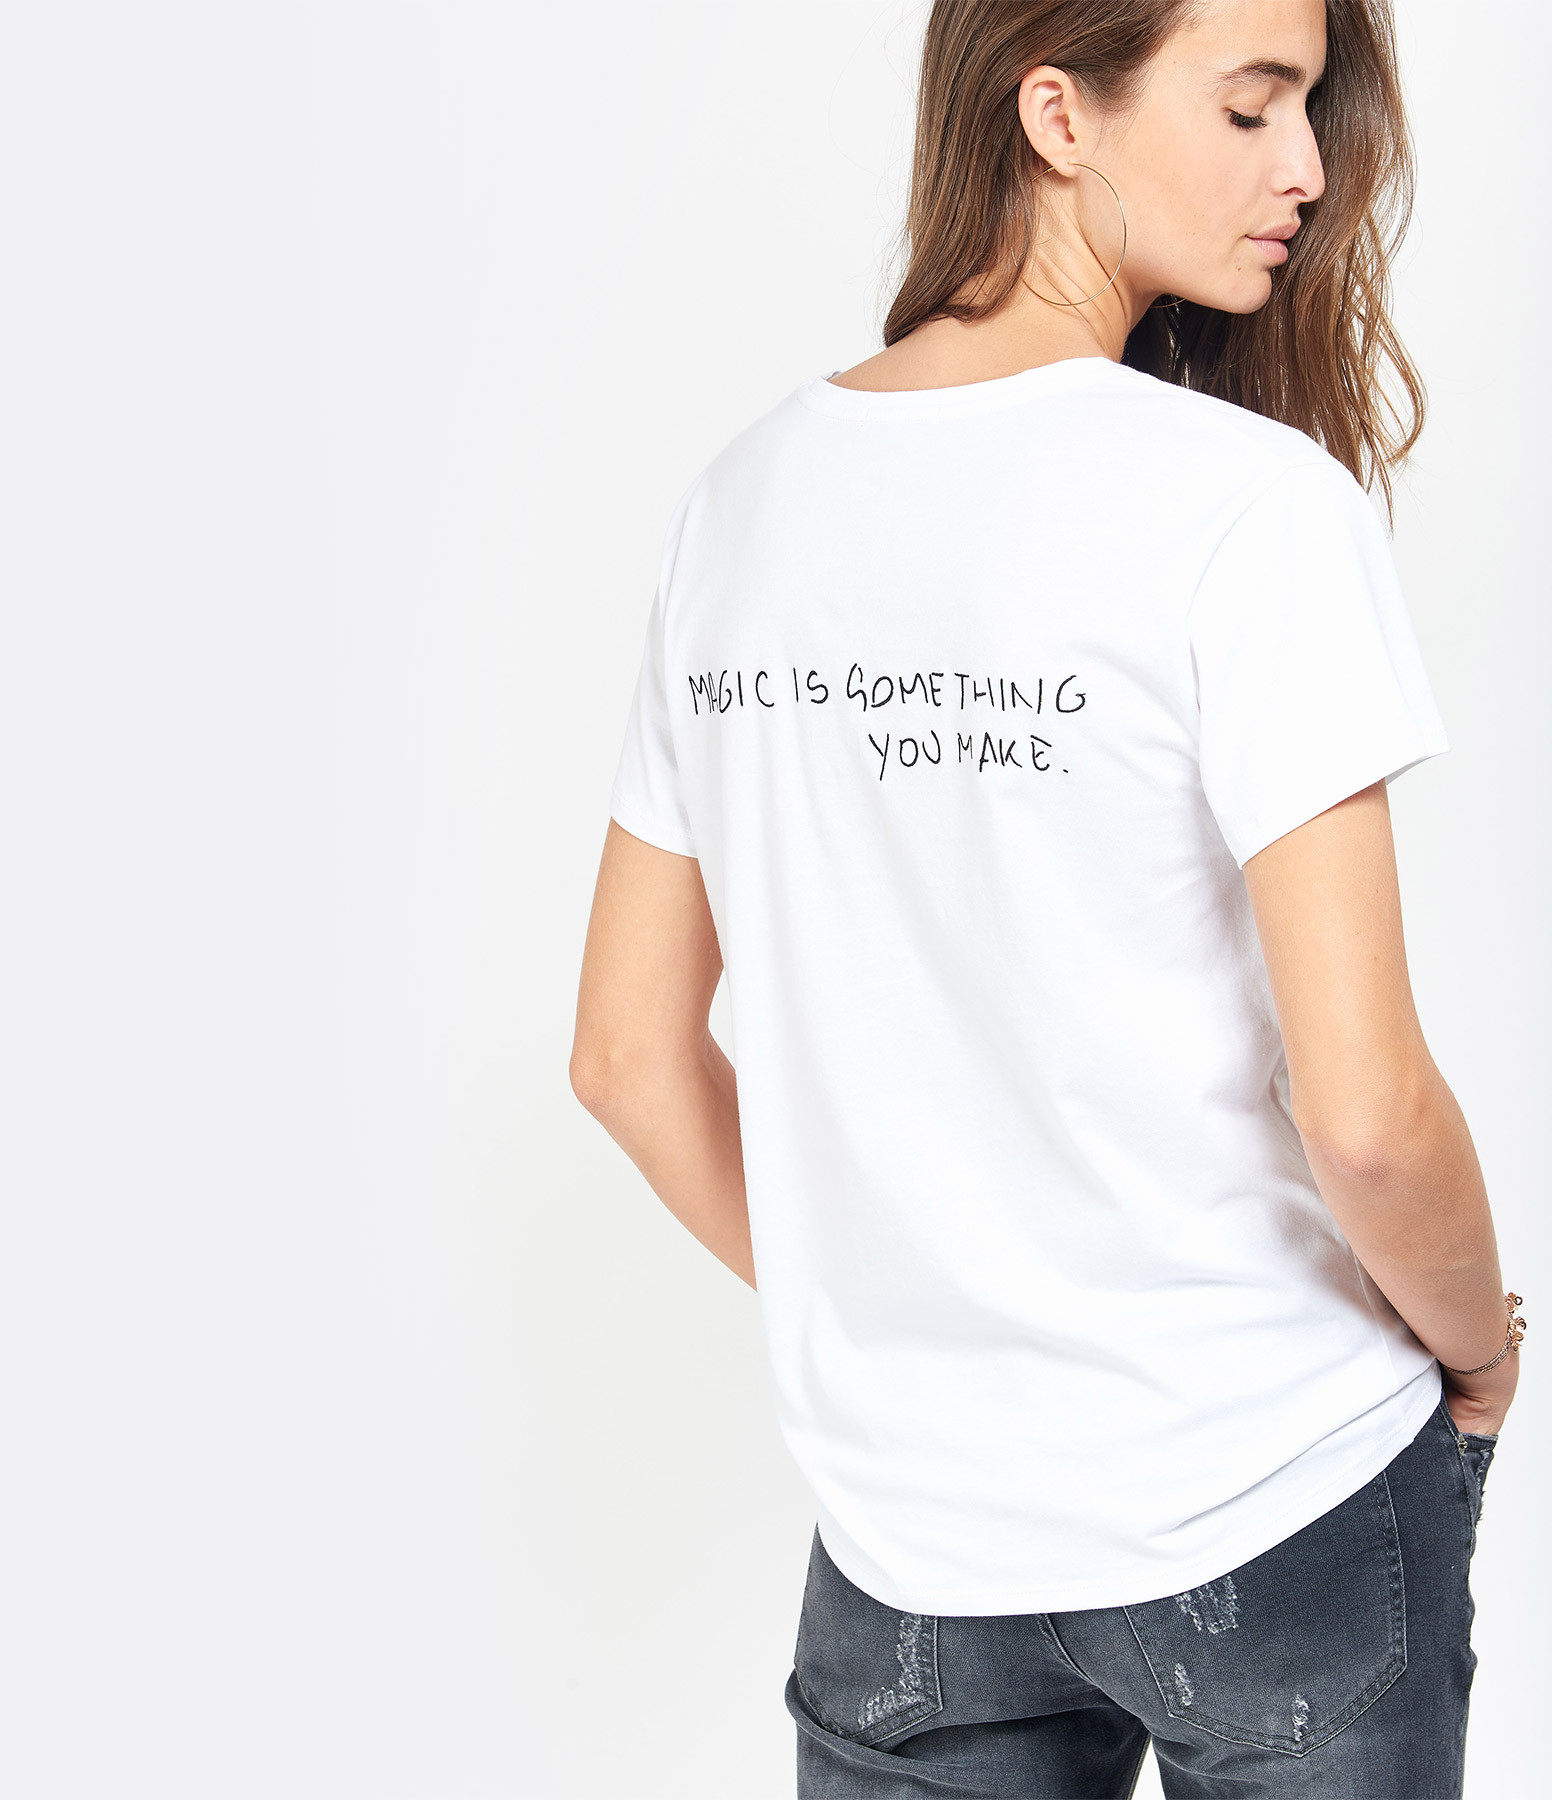 jeanne vouland tee shirt baria broderie magic is blanc. Black Bedroom Furniture Sets. Home Design Ideas